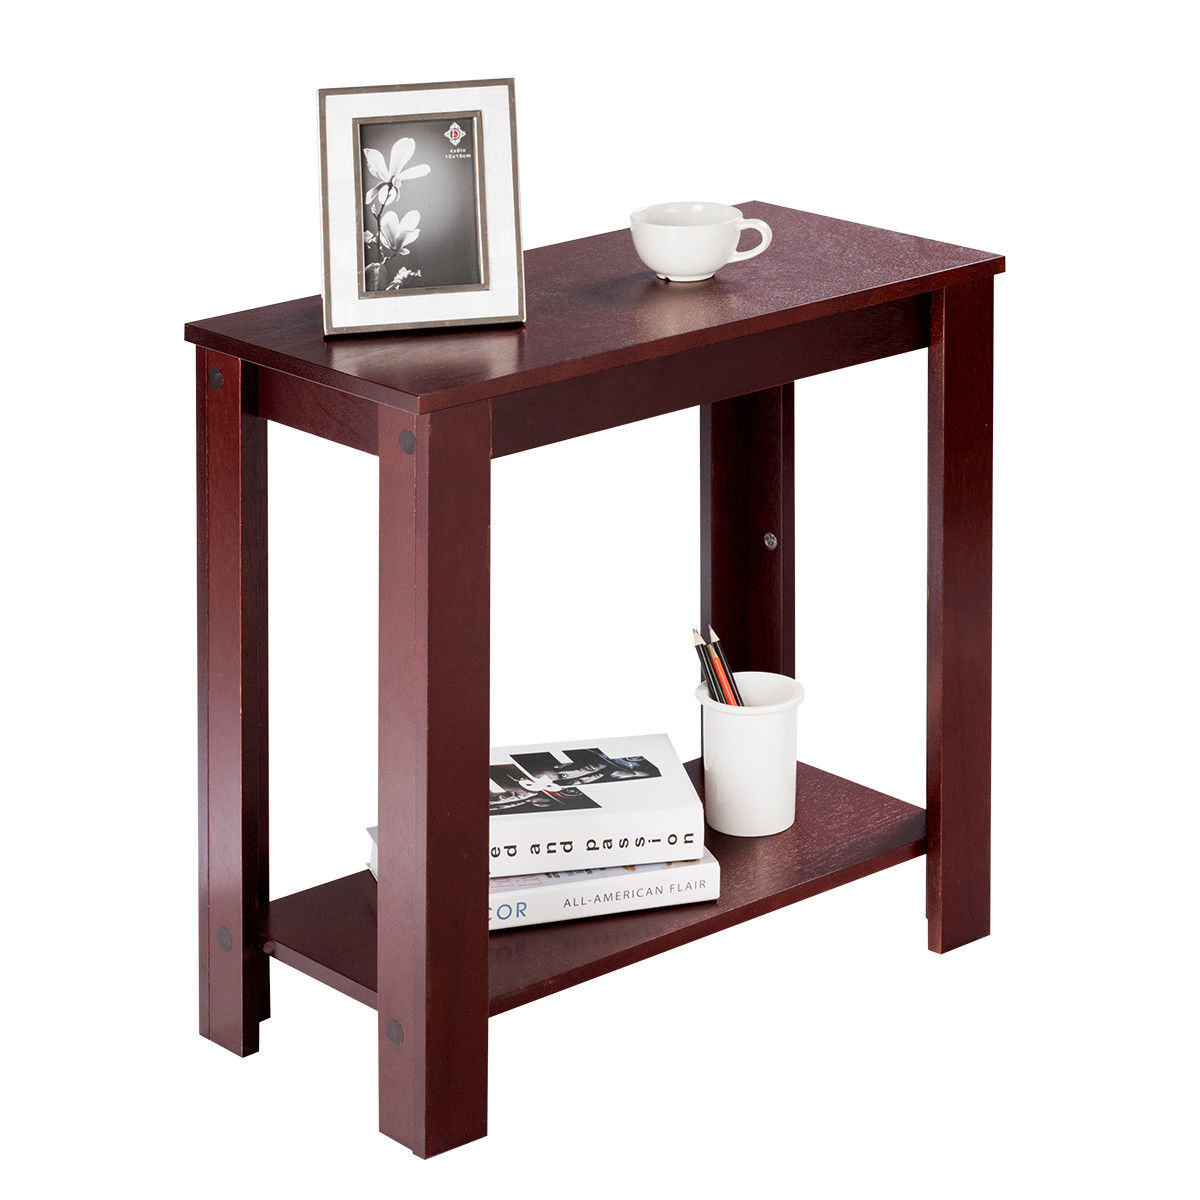 Costway Chair Side Table Coffee Sofa Wooden End Shelf ...